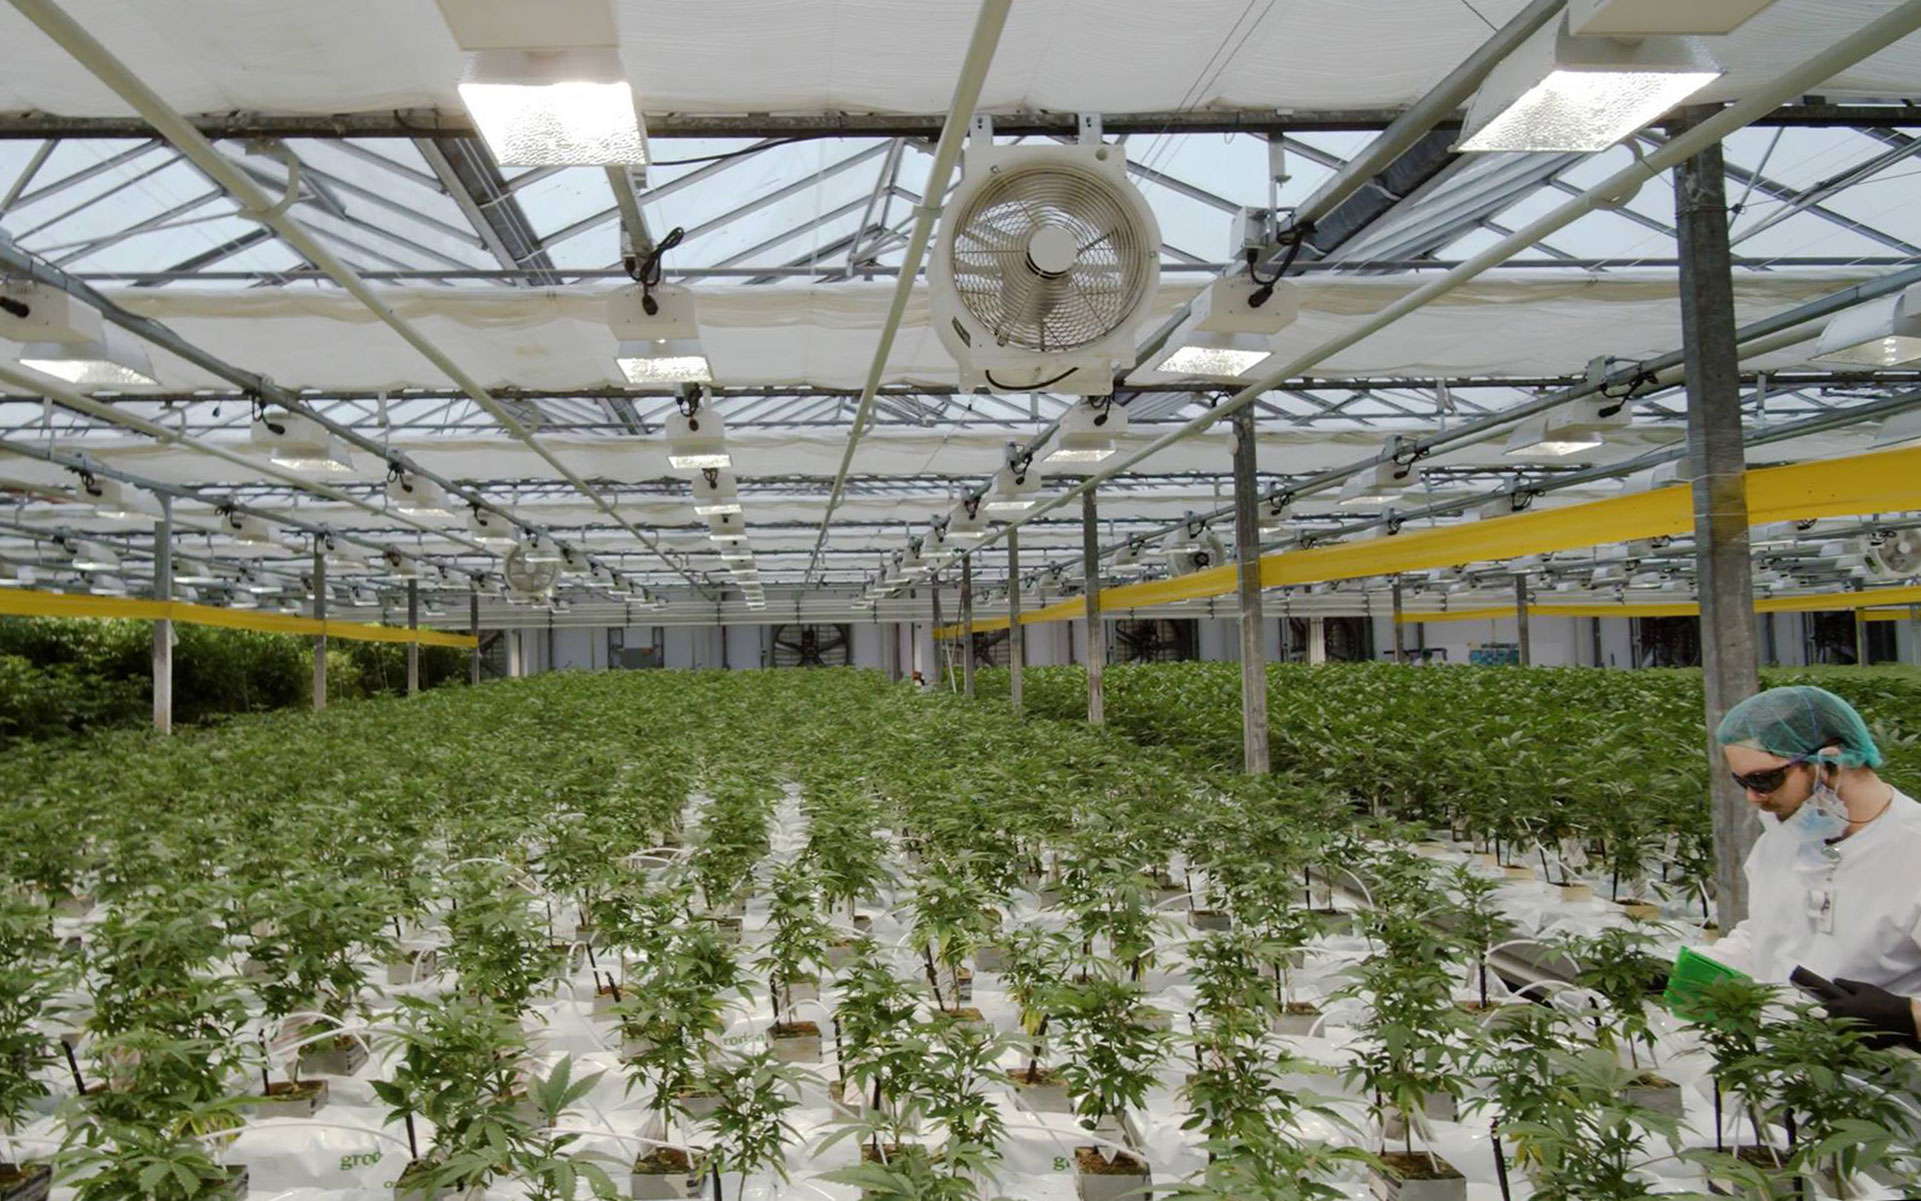 CannTrust Shares Dip, Second Cannabis Facility Rated Non-compliant